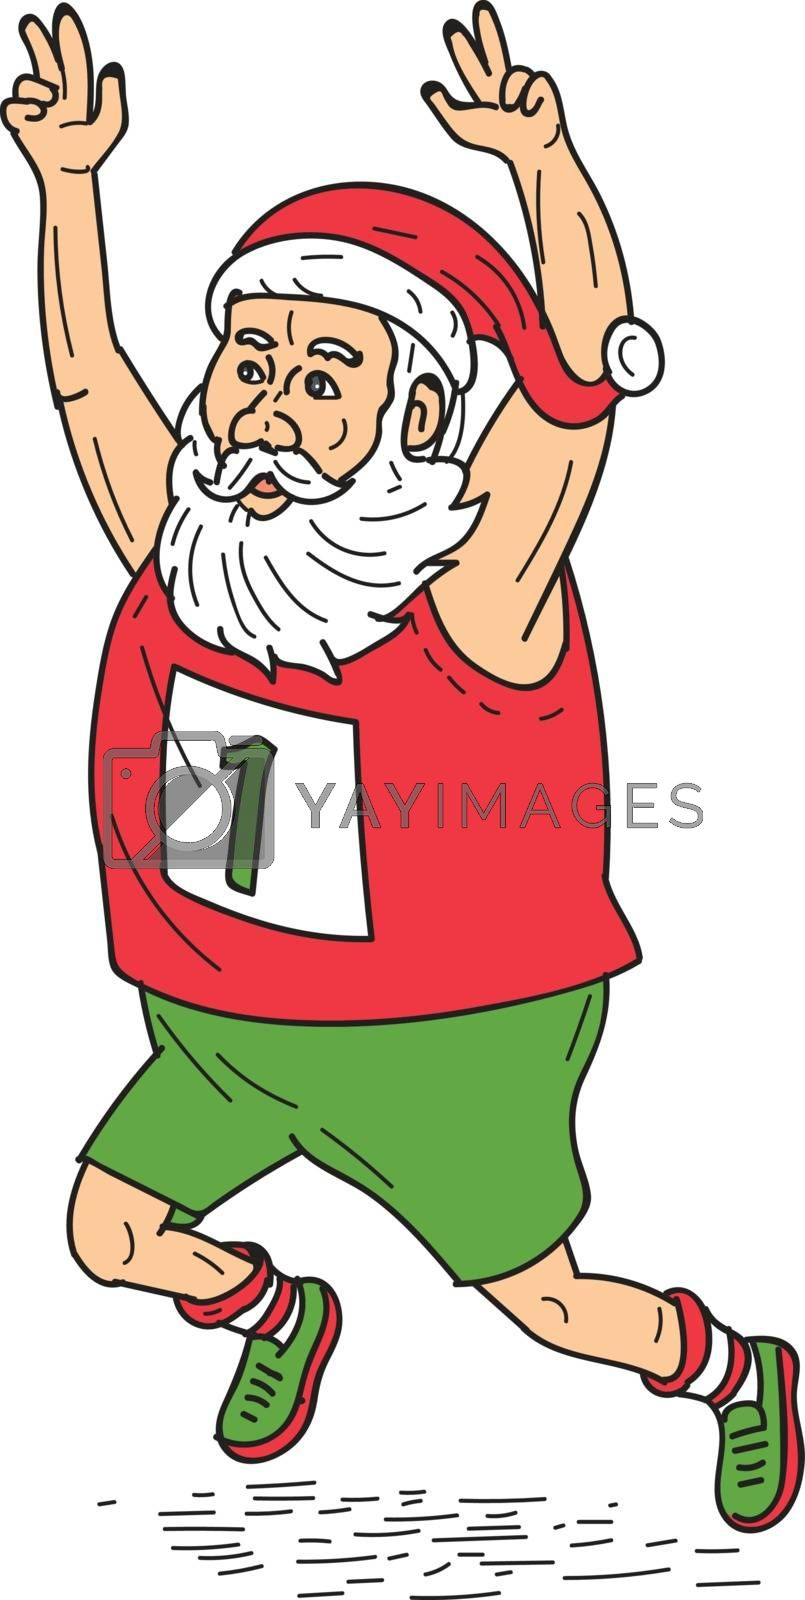 Illustration of santa claus saint nicholas father christmas running a marathon raising hands over head set on isolated white background done in cartoon style.